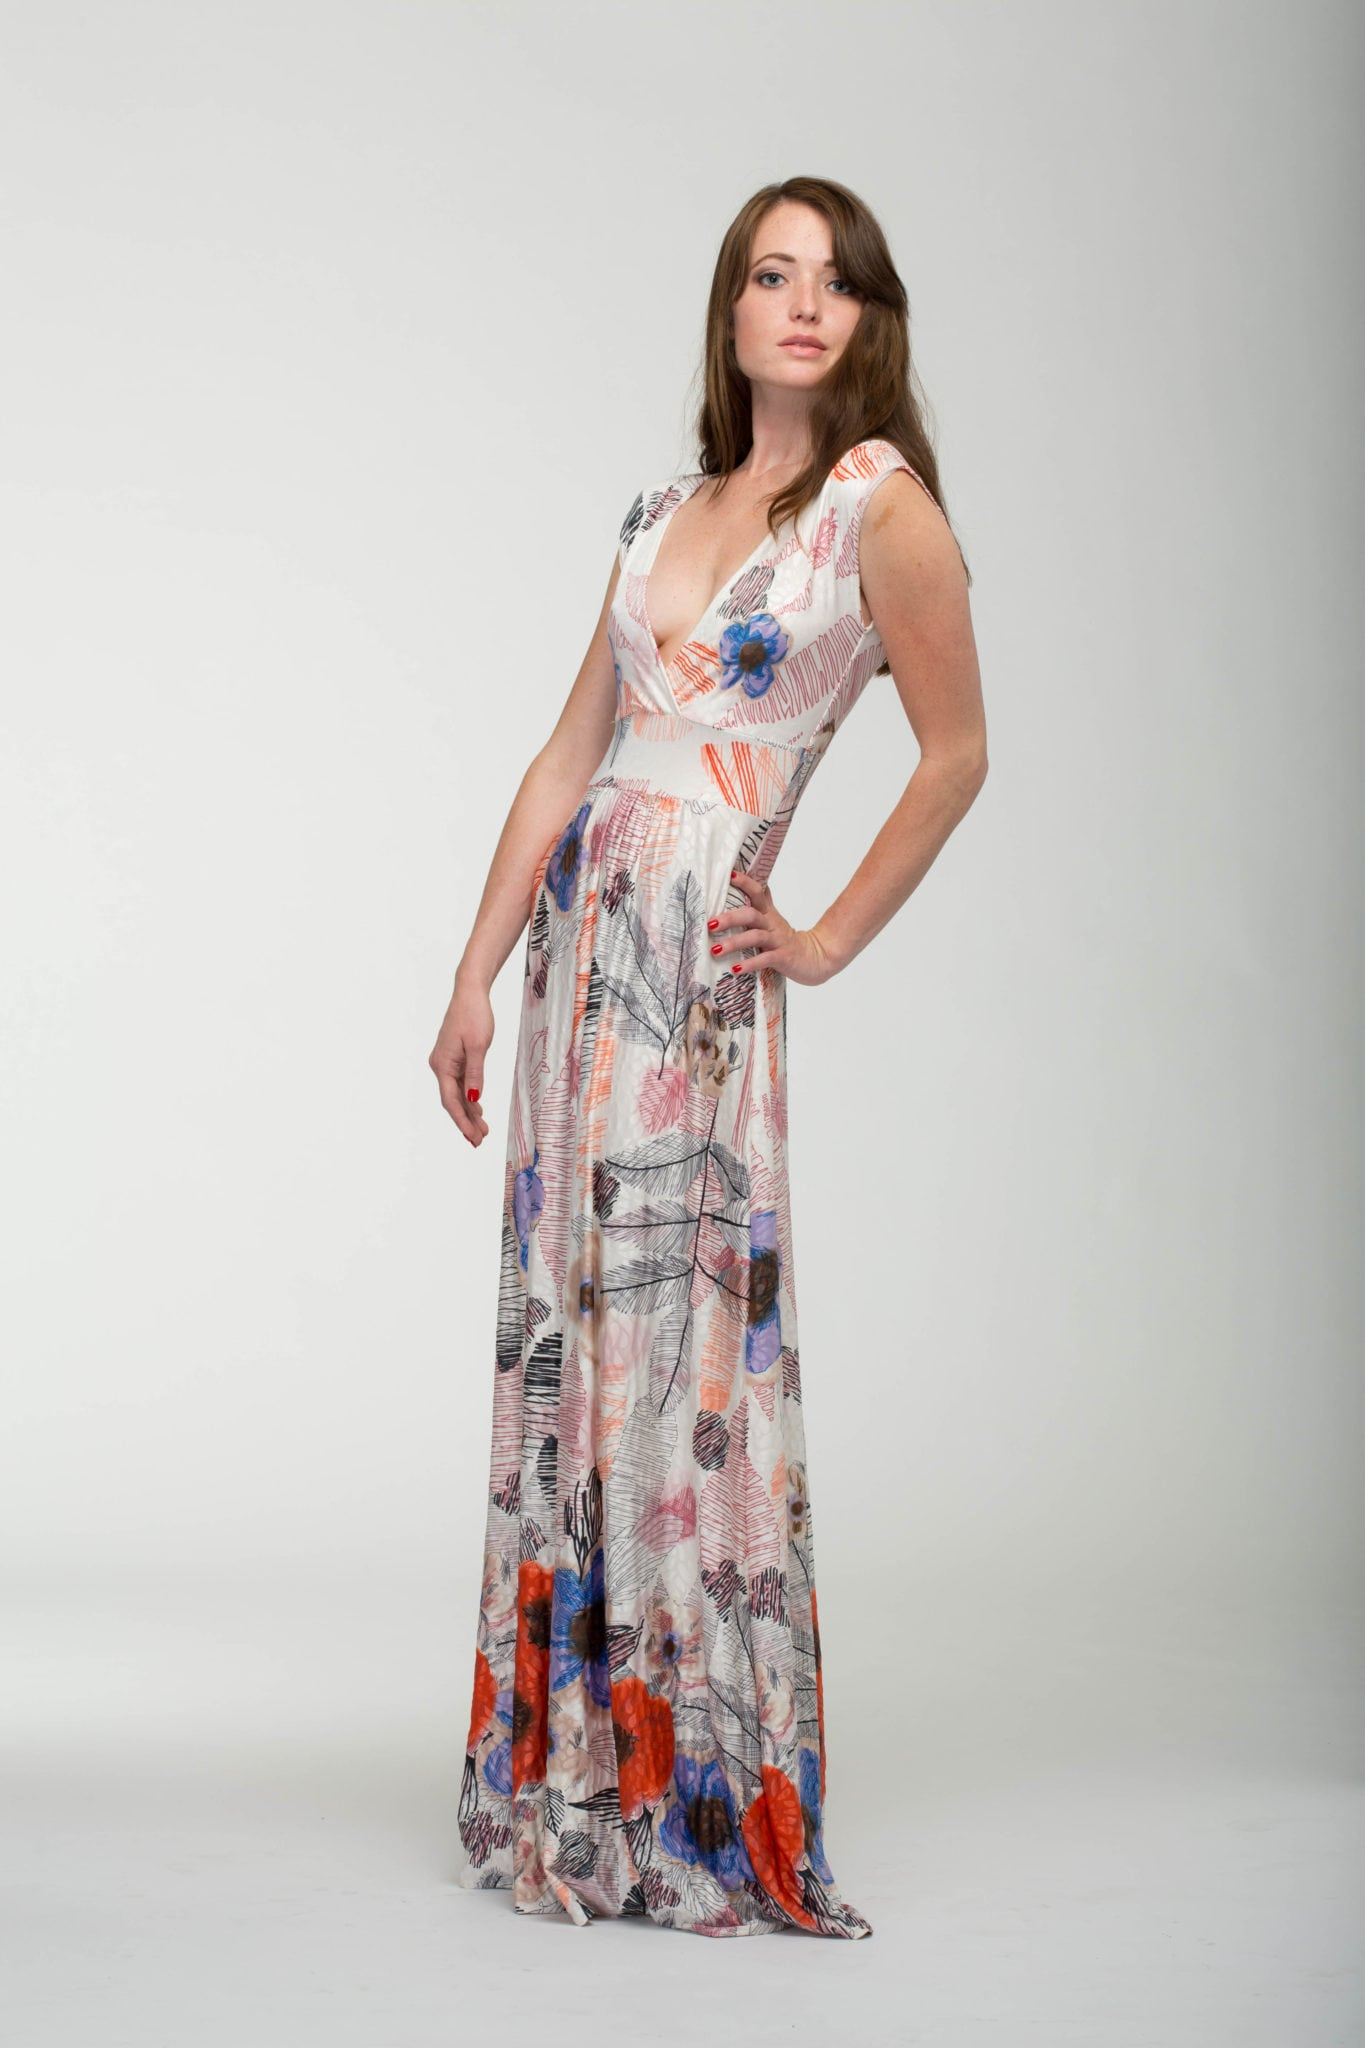 Veronica Lake Floral Maxi Dress